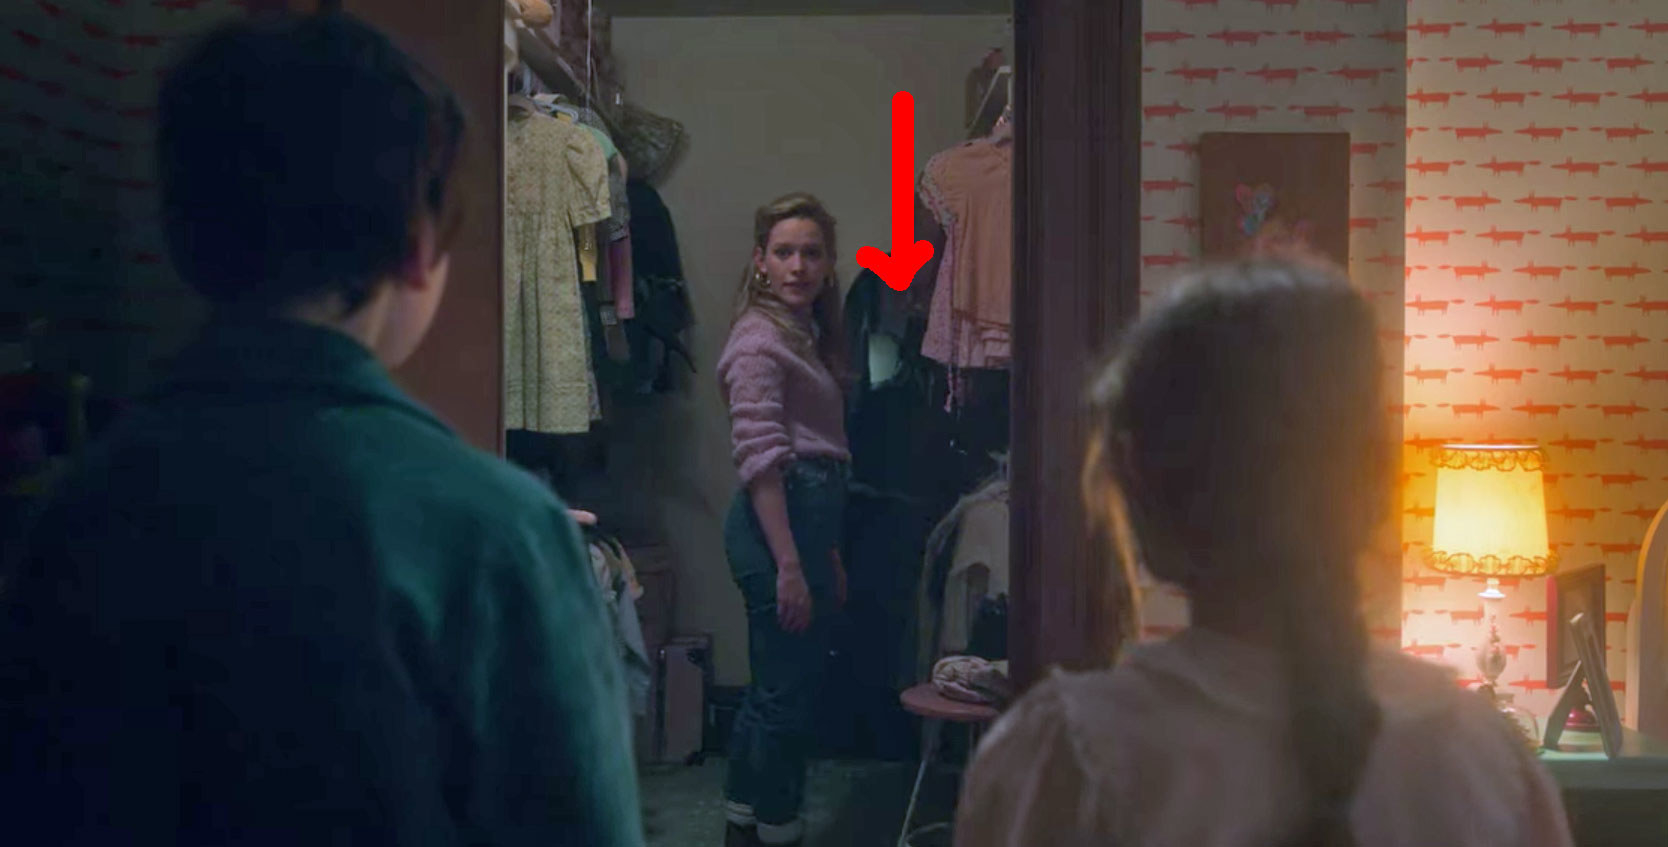 Miles and Flora stand facing Dani, who is in the closet in front of a mirror; a red arrow points to a shape in the mirror